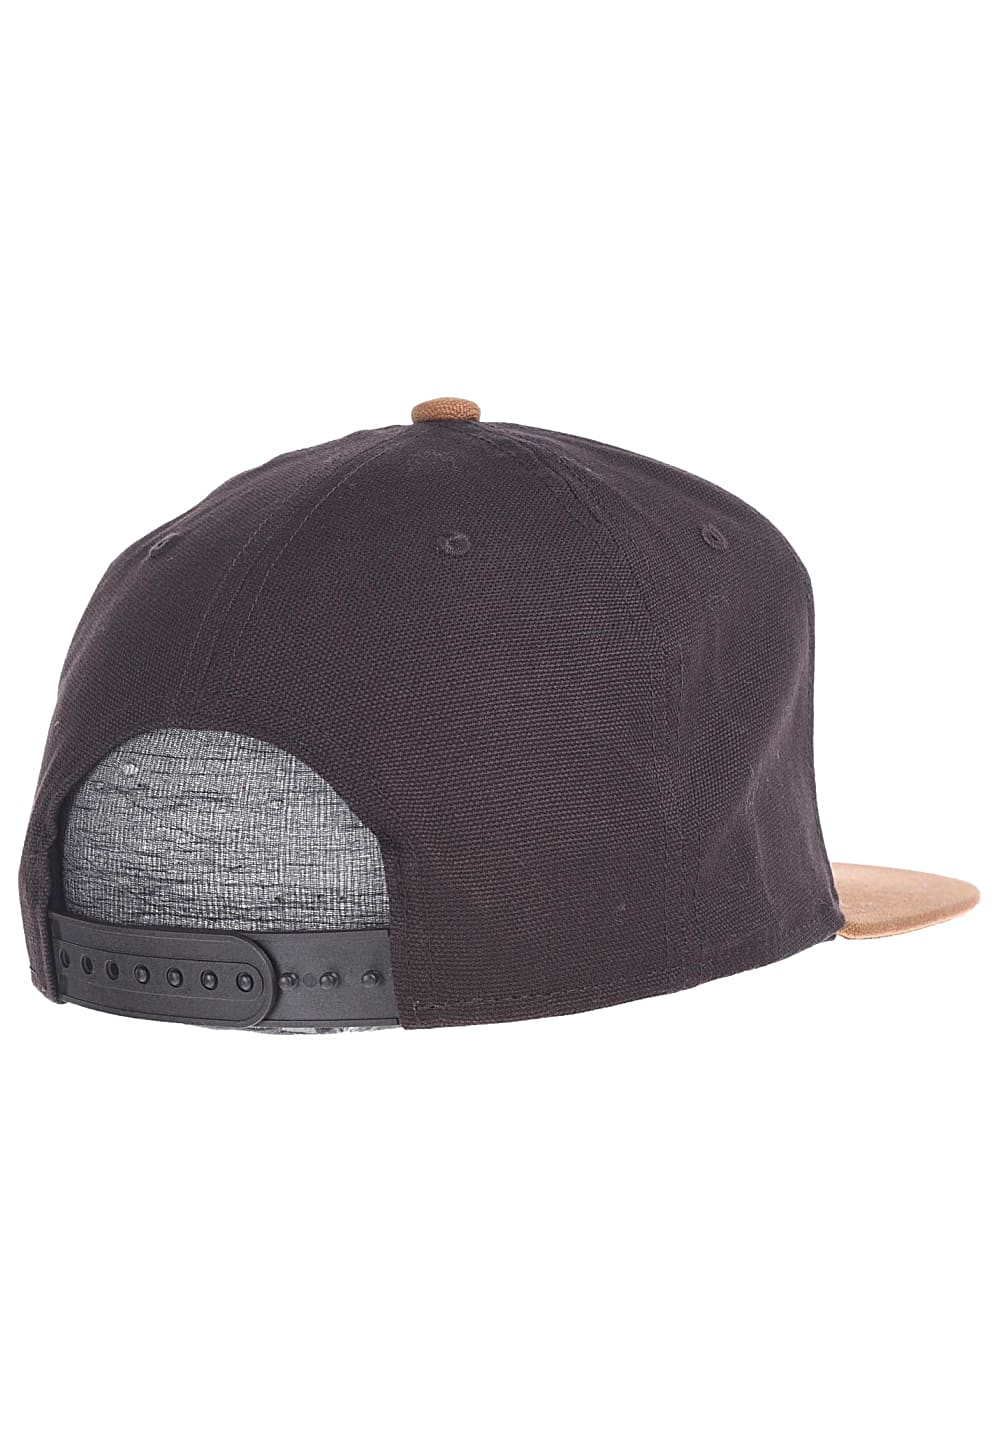 Next. This product is currently out of stock. carhartt WIP. Logo Bi-Colored  - Snapback Cap 63b443820